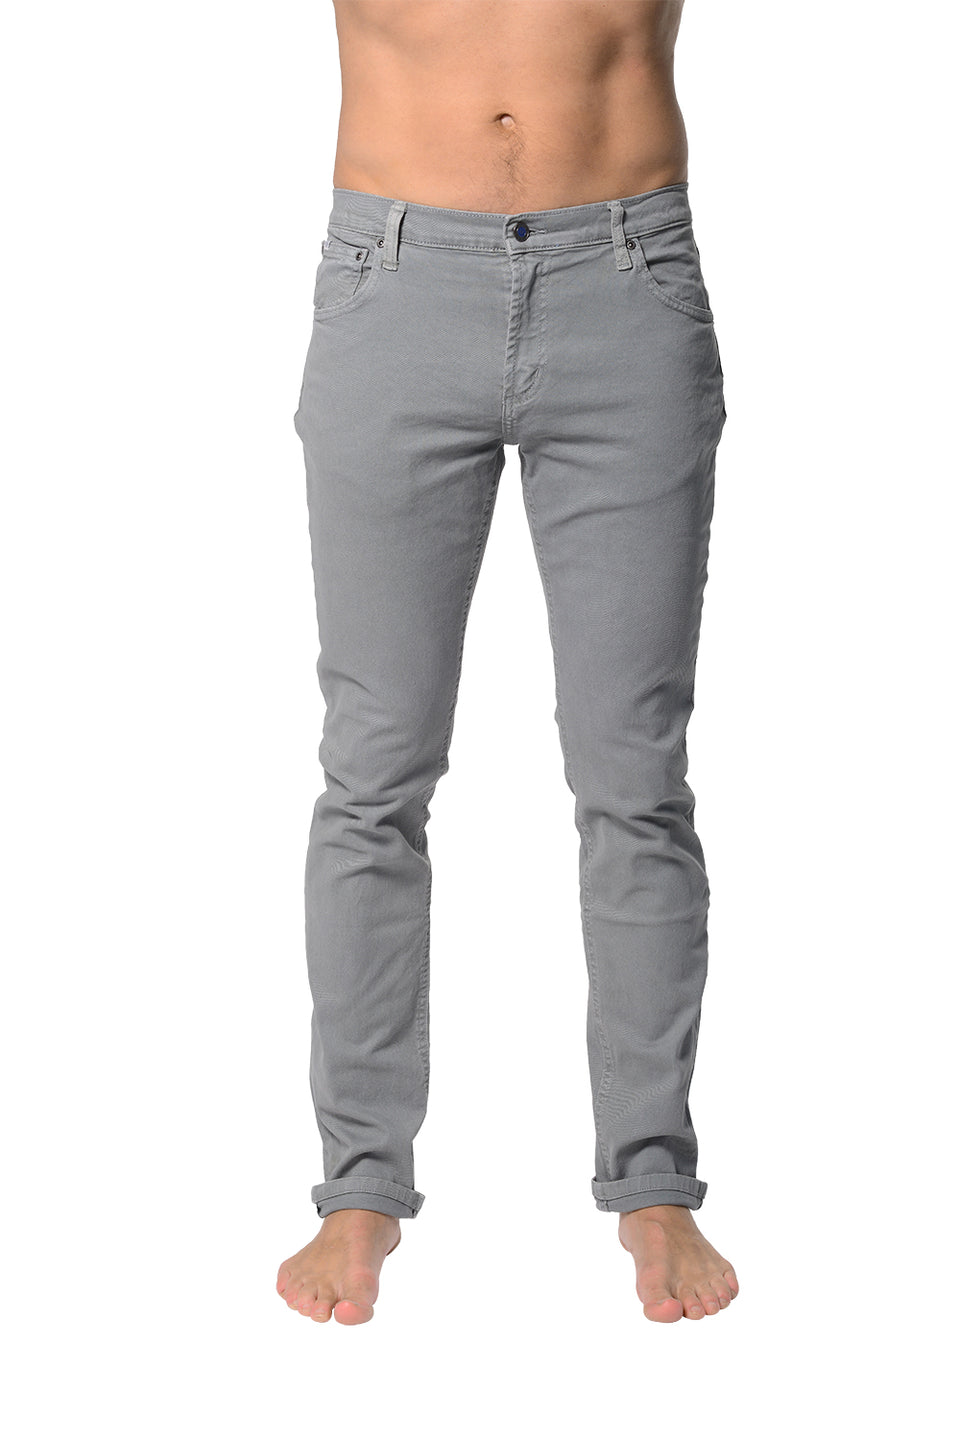 5 Pocket Slim Buck - Light Grey